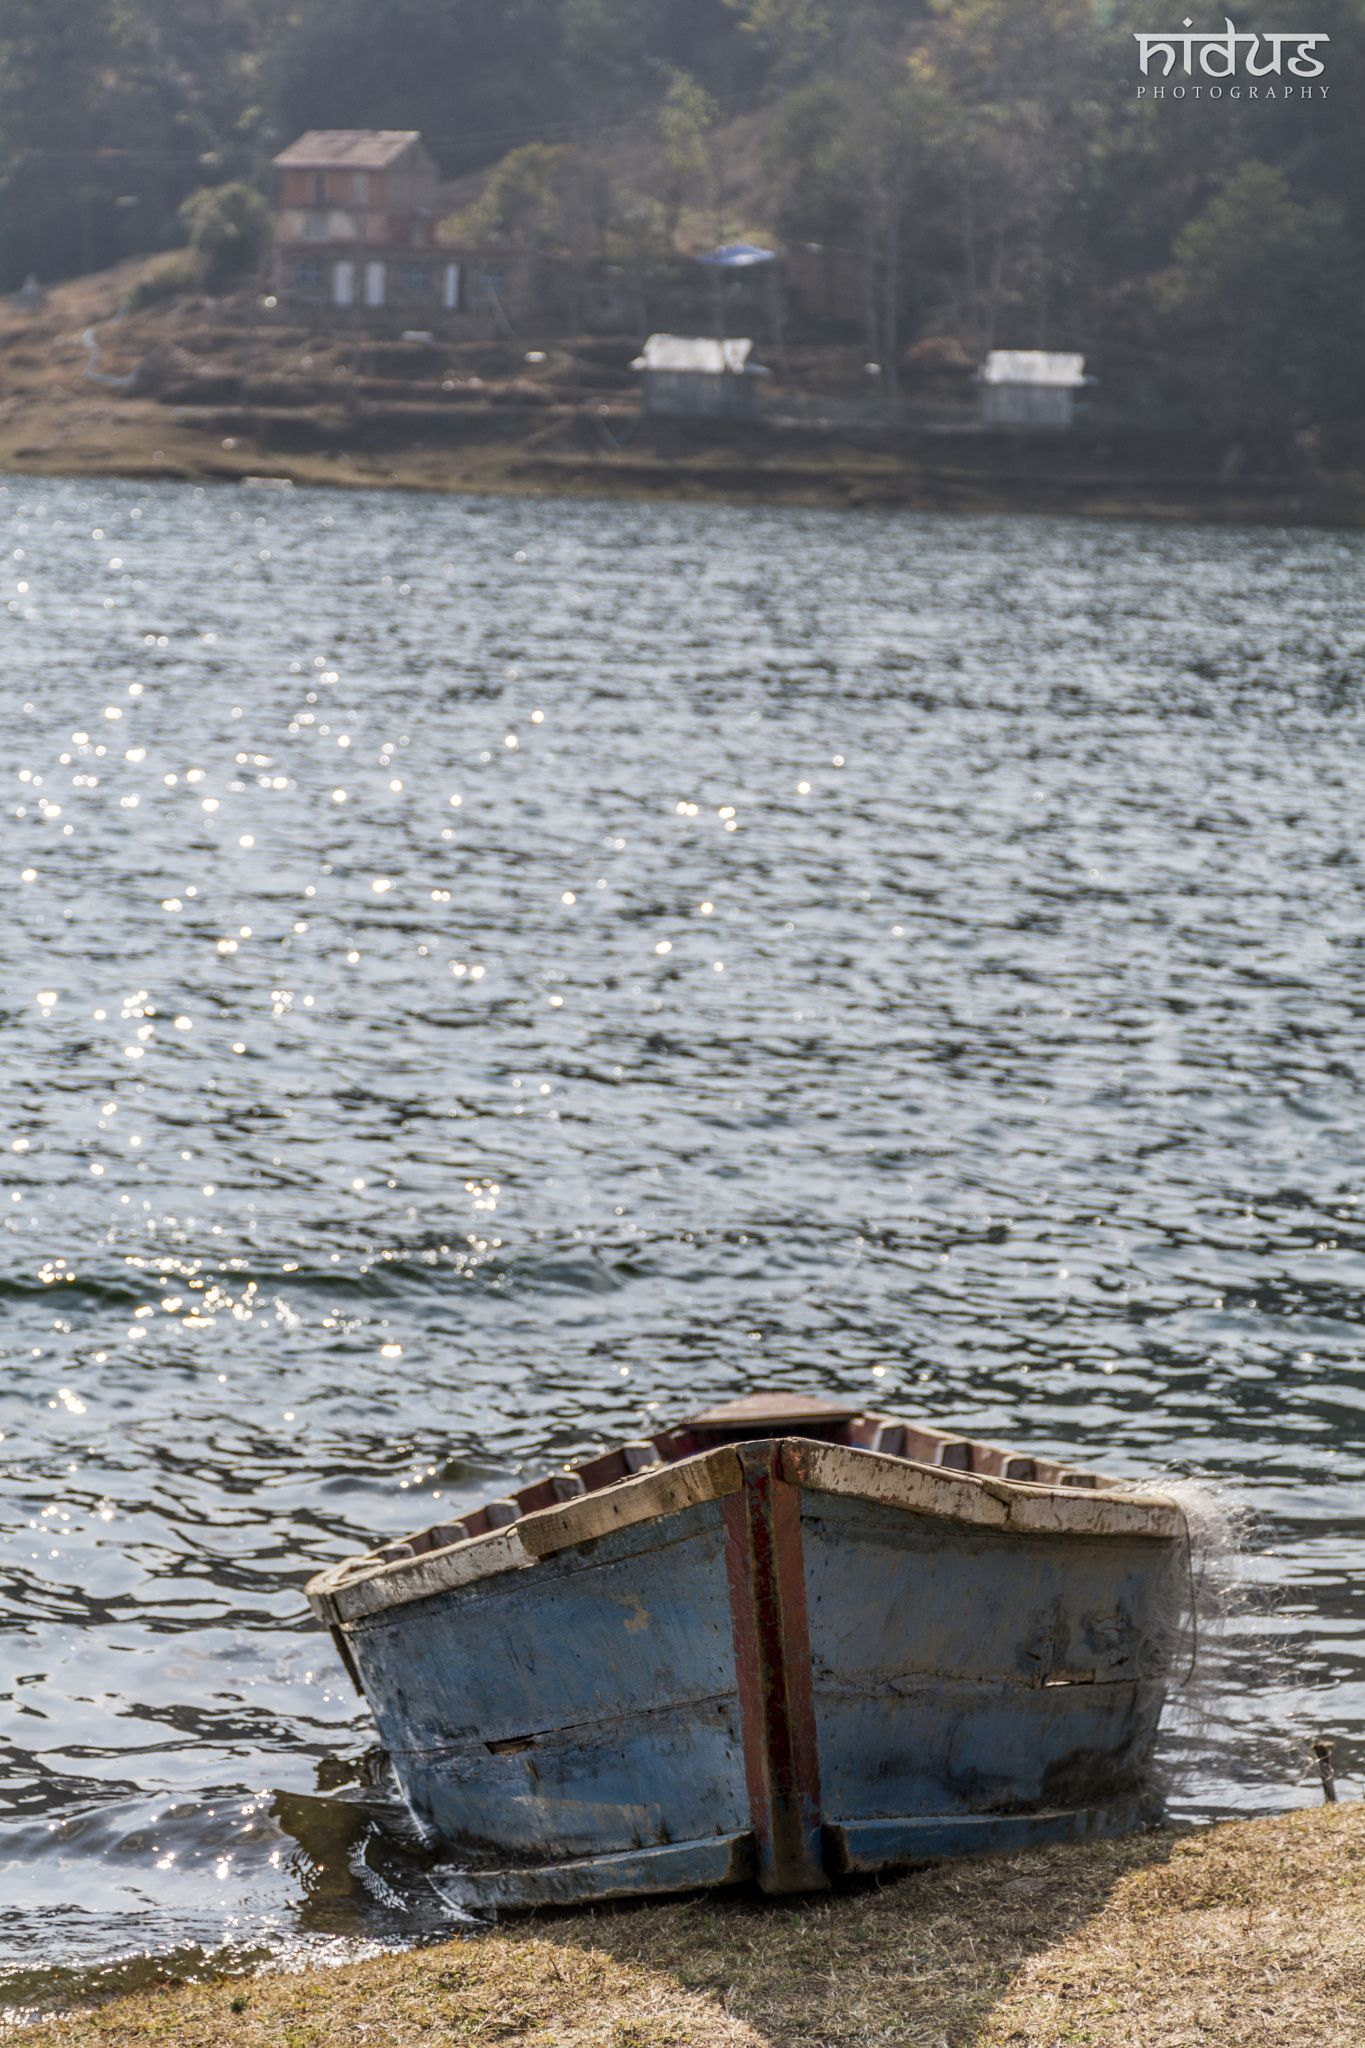 Boat and Water - sometimes even a simplest things attracts us a lot...